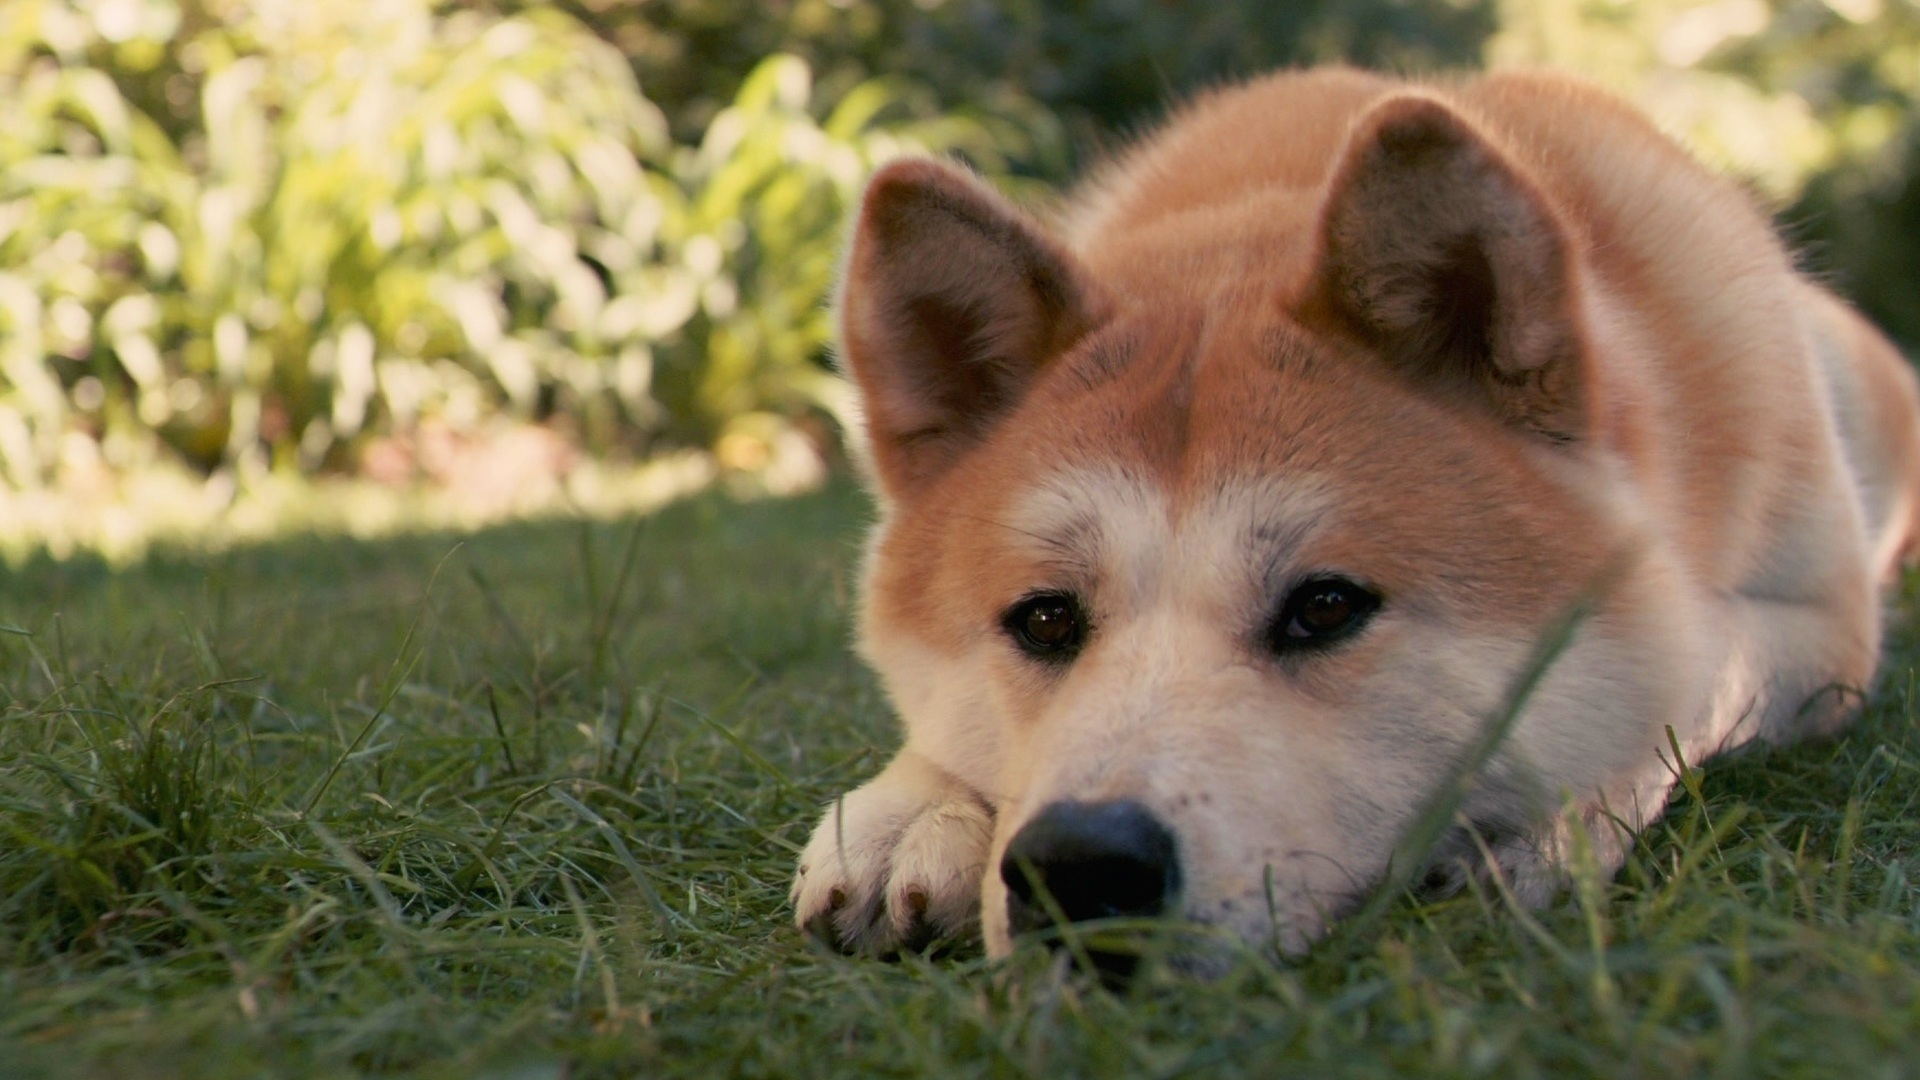 Movies Animals Dogs lying HD Wallpaper